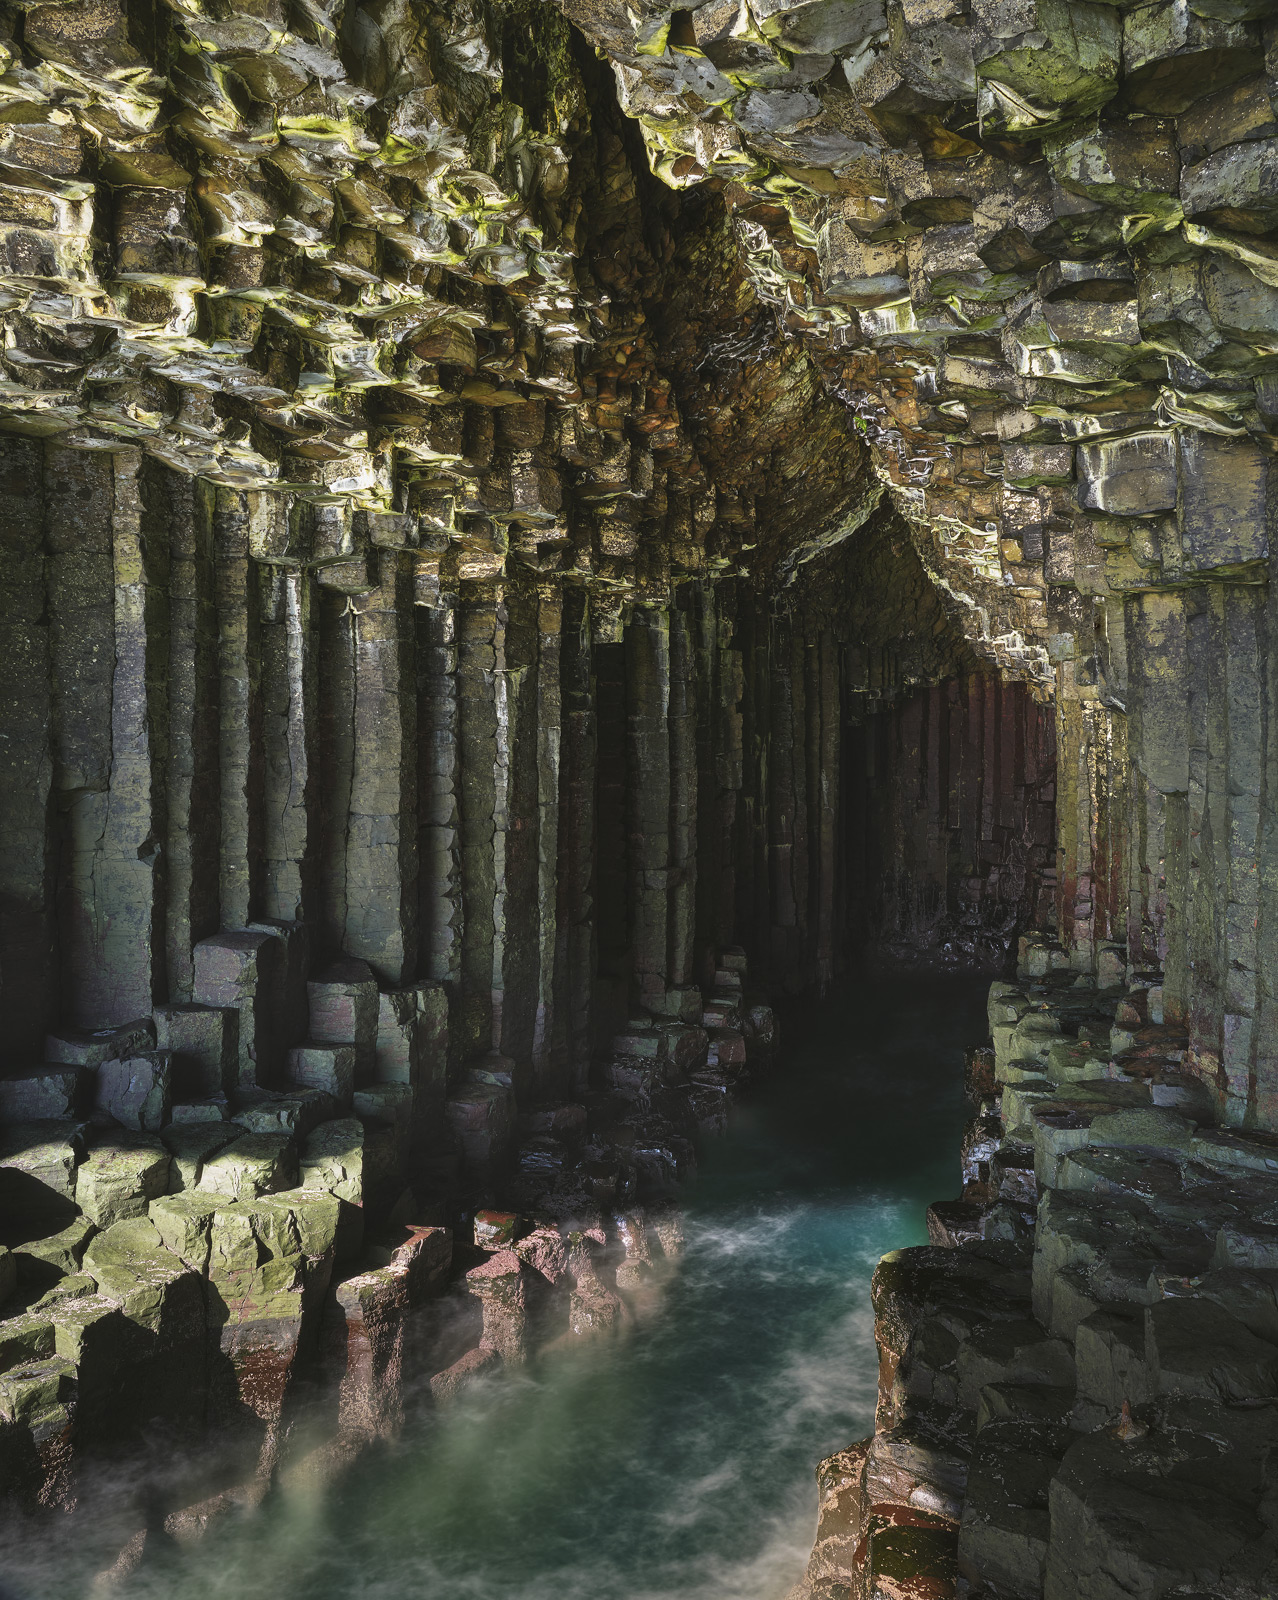 I found this icon of the Inner hebrides known as Fingal's cave every bit as spectacular as I hoped it would be with vertical...